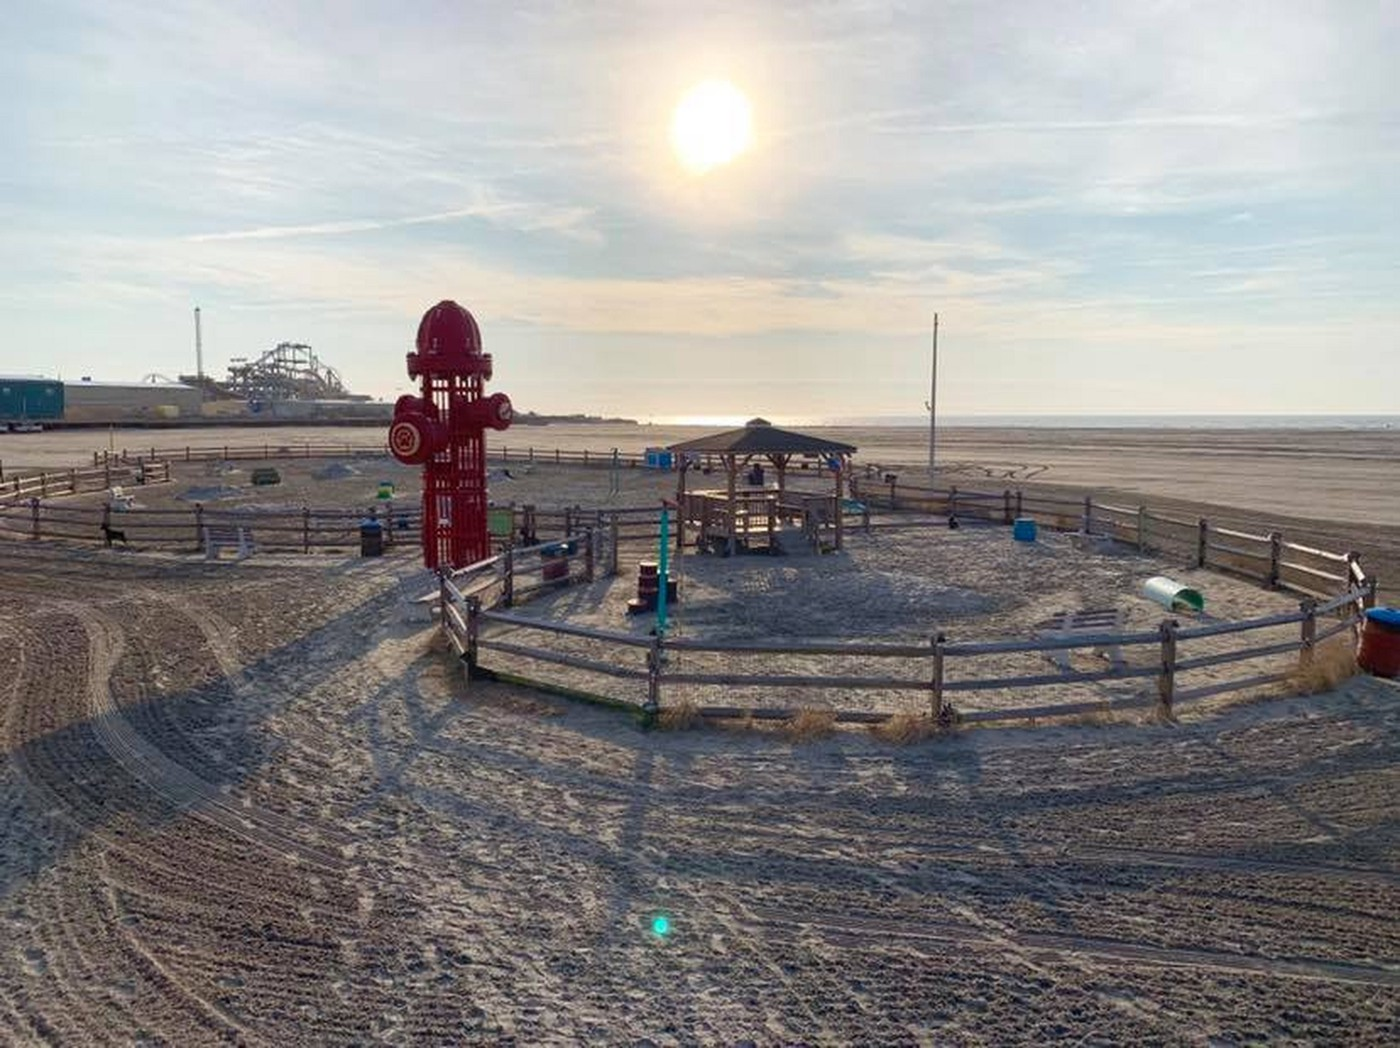 Wildwood Dog Park and Dog Beach is instantly recognizable for its giant fire hydrant.